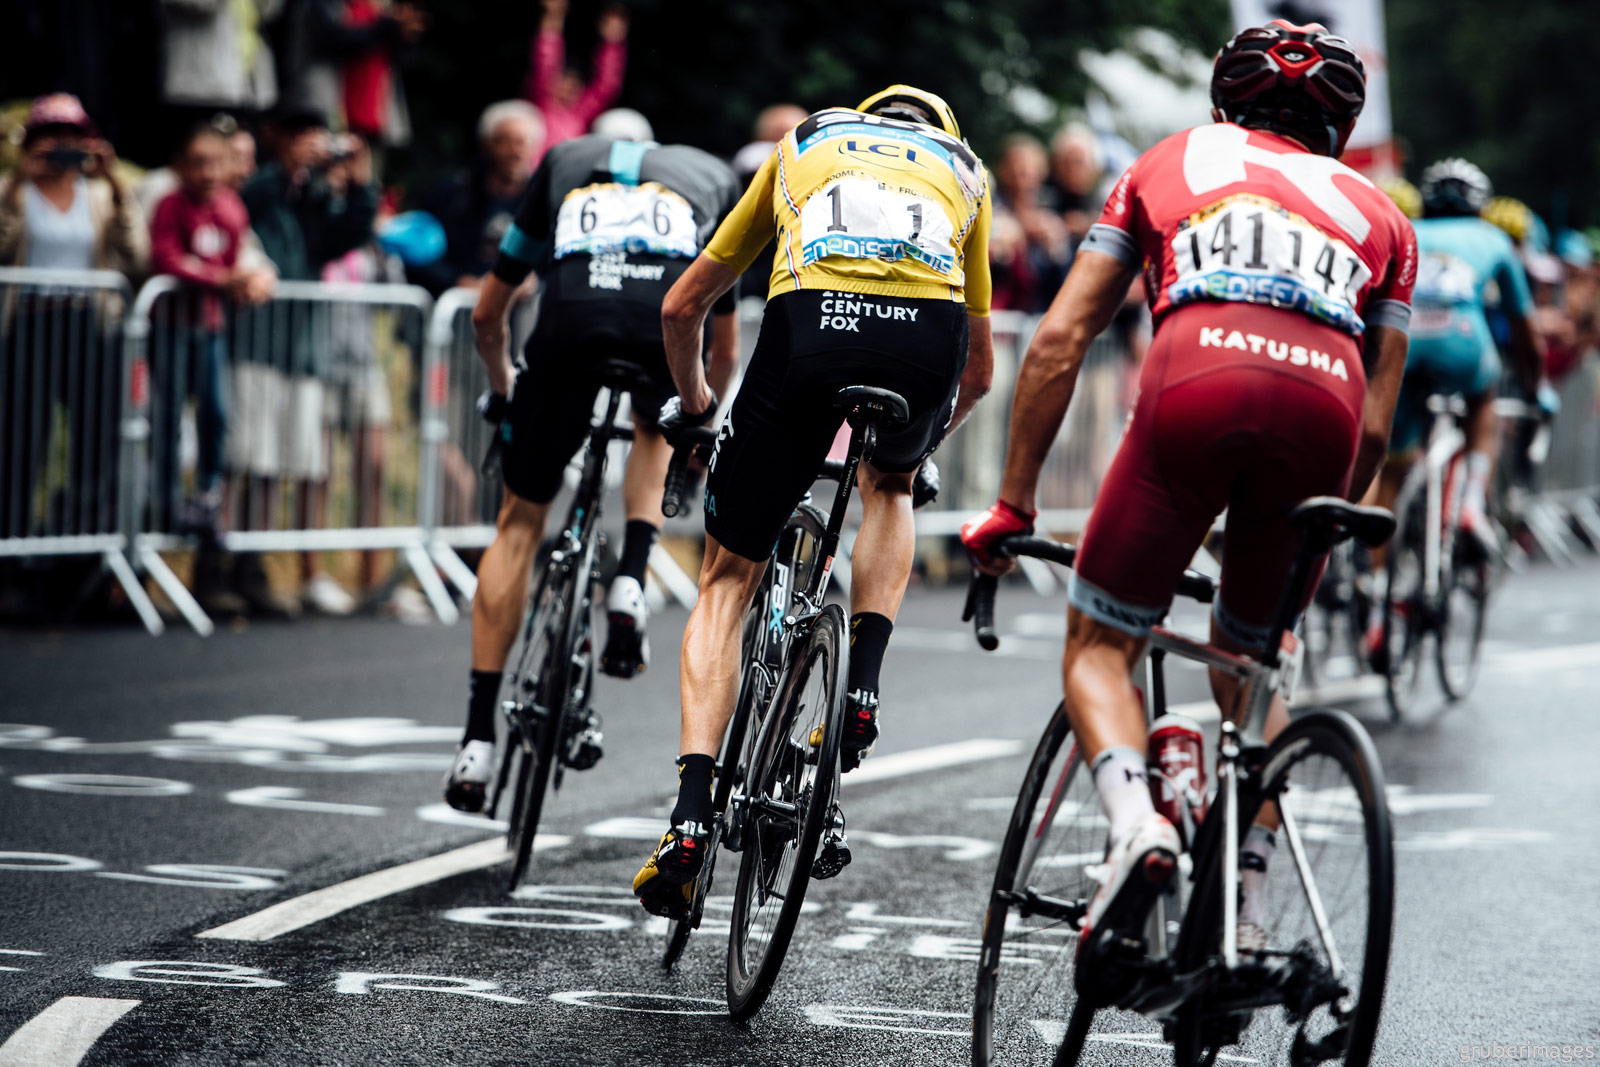 Race leader Chris Froome (Sky) and Joaquim Rodriguez (Katusha) on the final climb of Saint-Gervais Mont Blanc, stage 19 of the 2016 Tour de France, July 22.